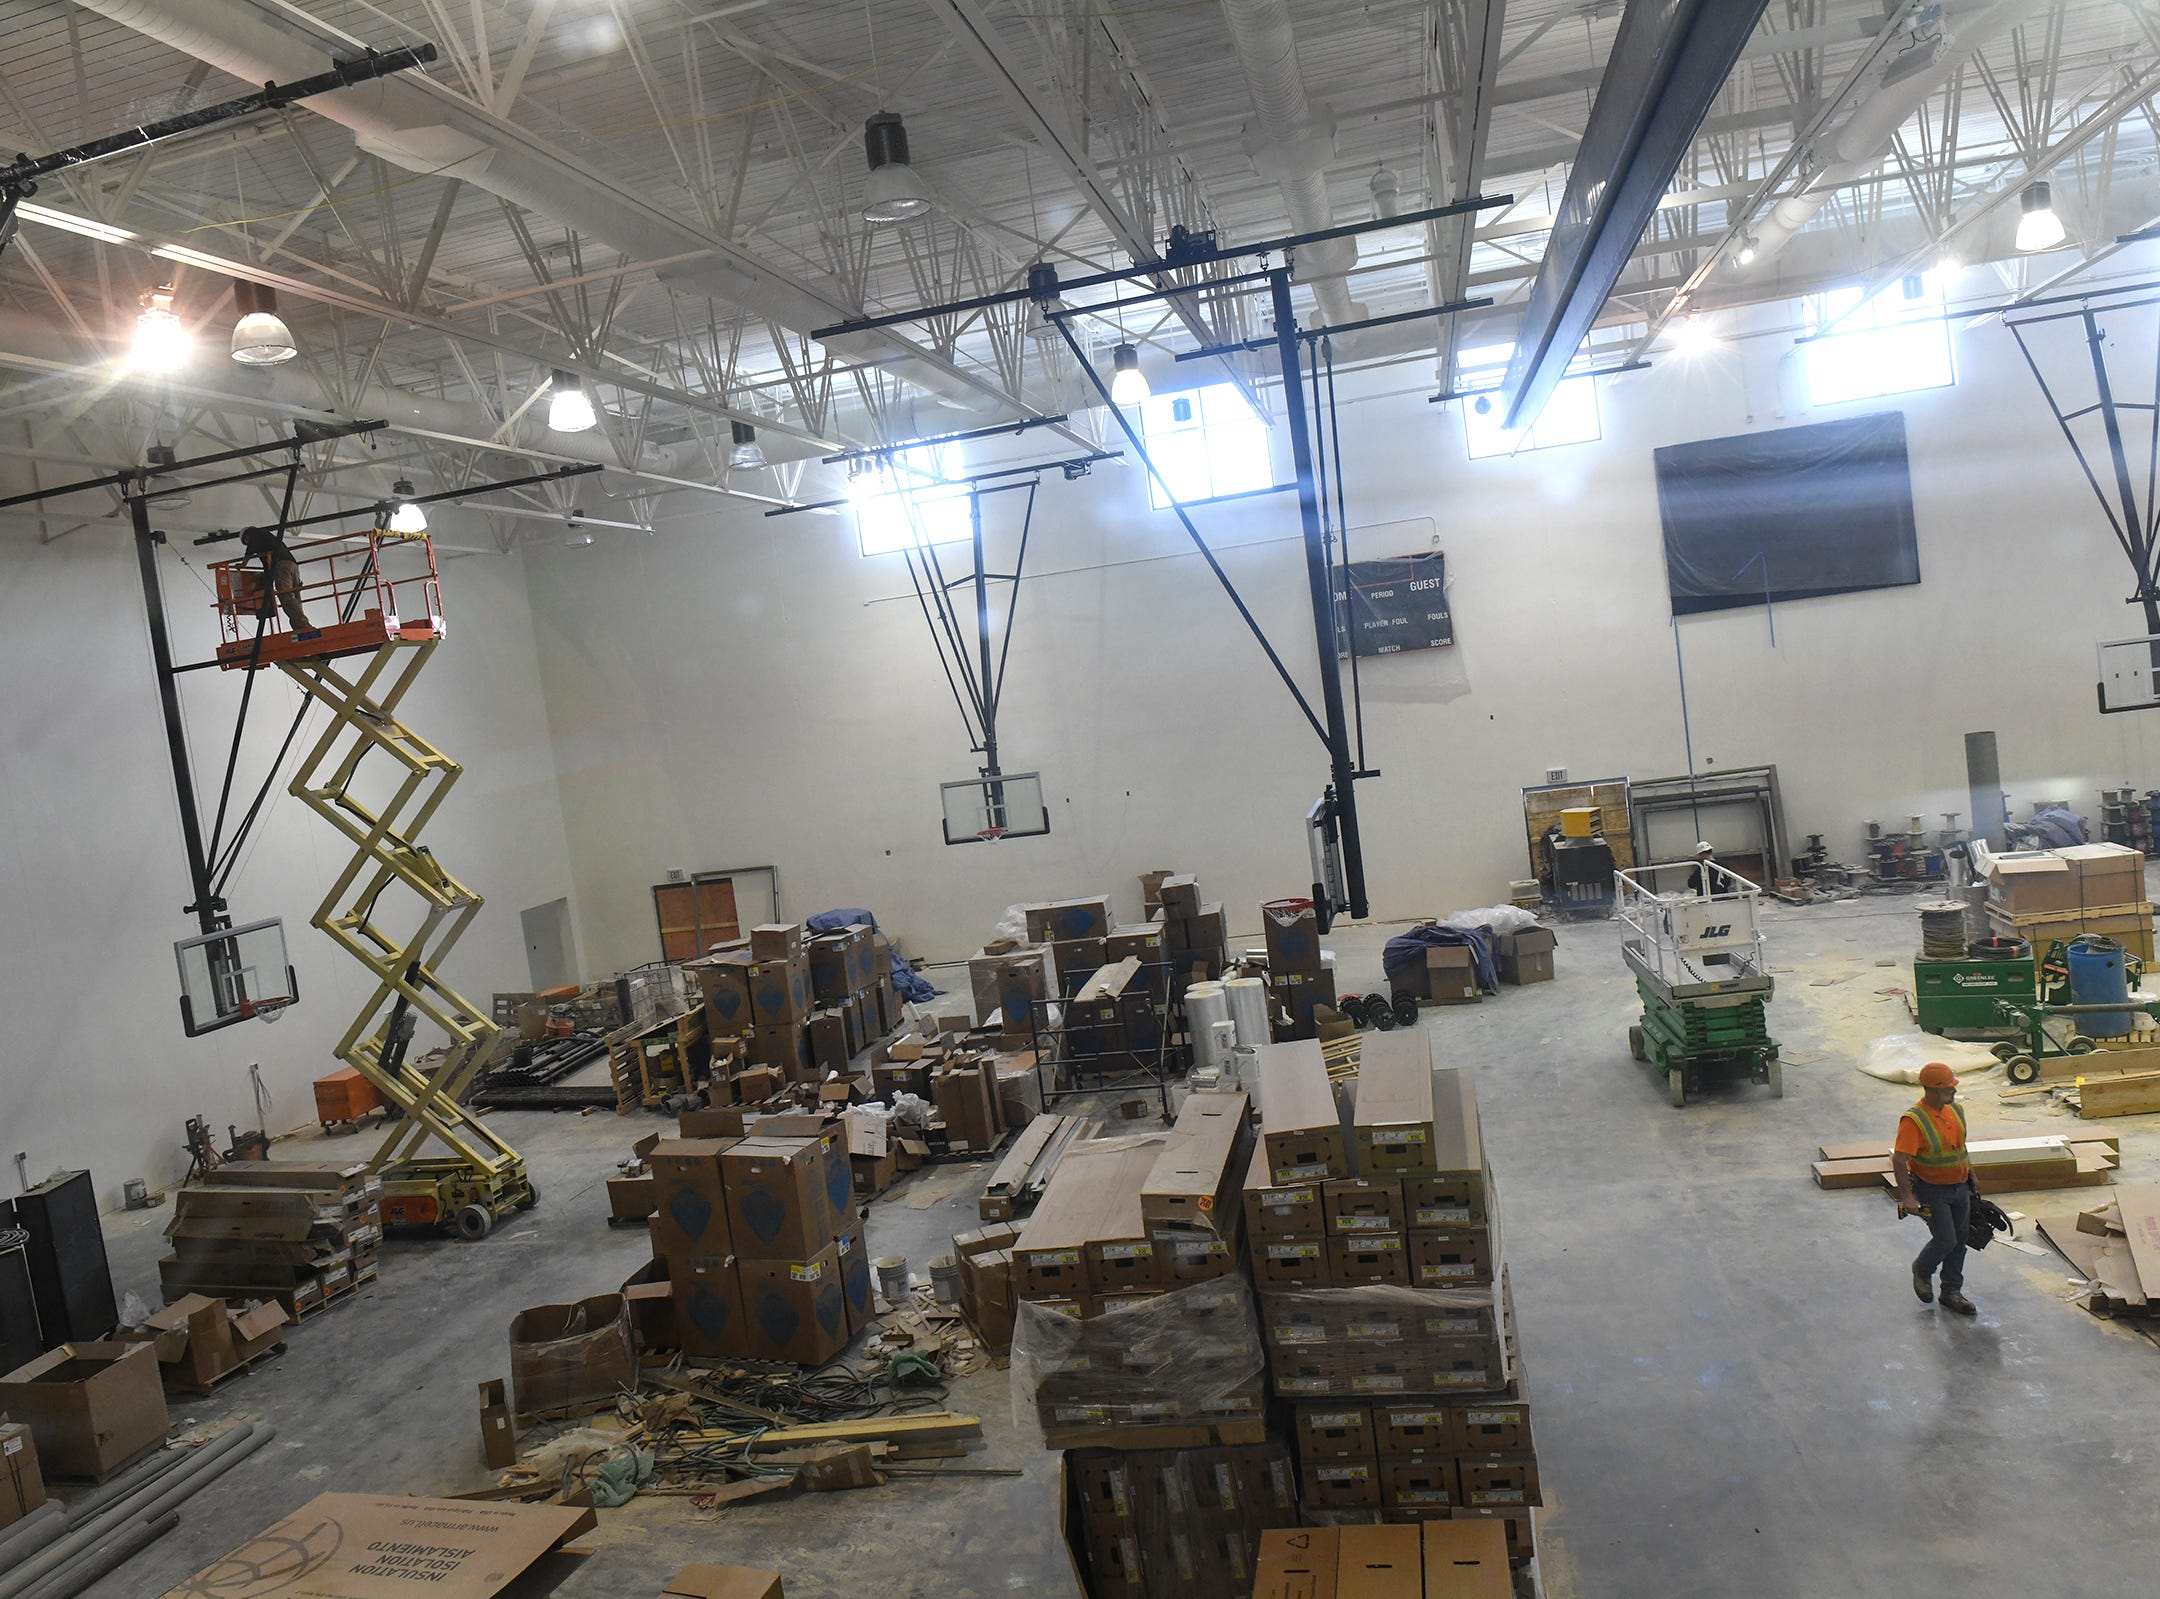 Workers complete tasks in the gymnasium at the new Tech High School building under construction Friday, March 15, in St. Cloud.